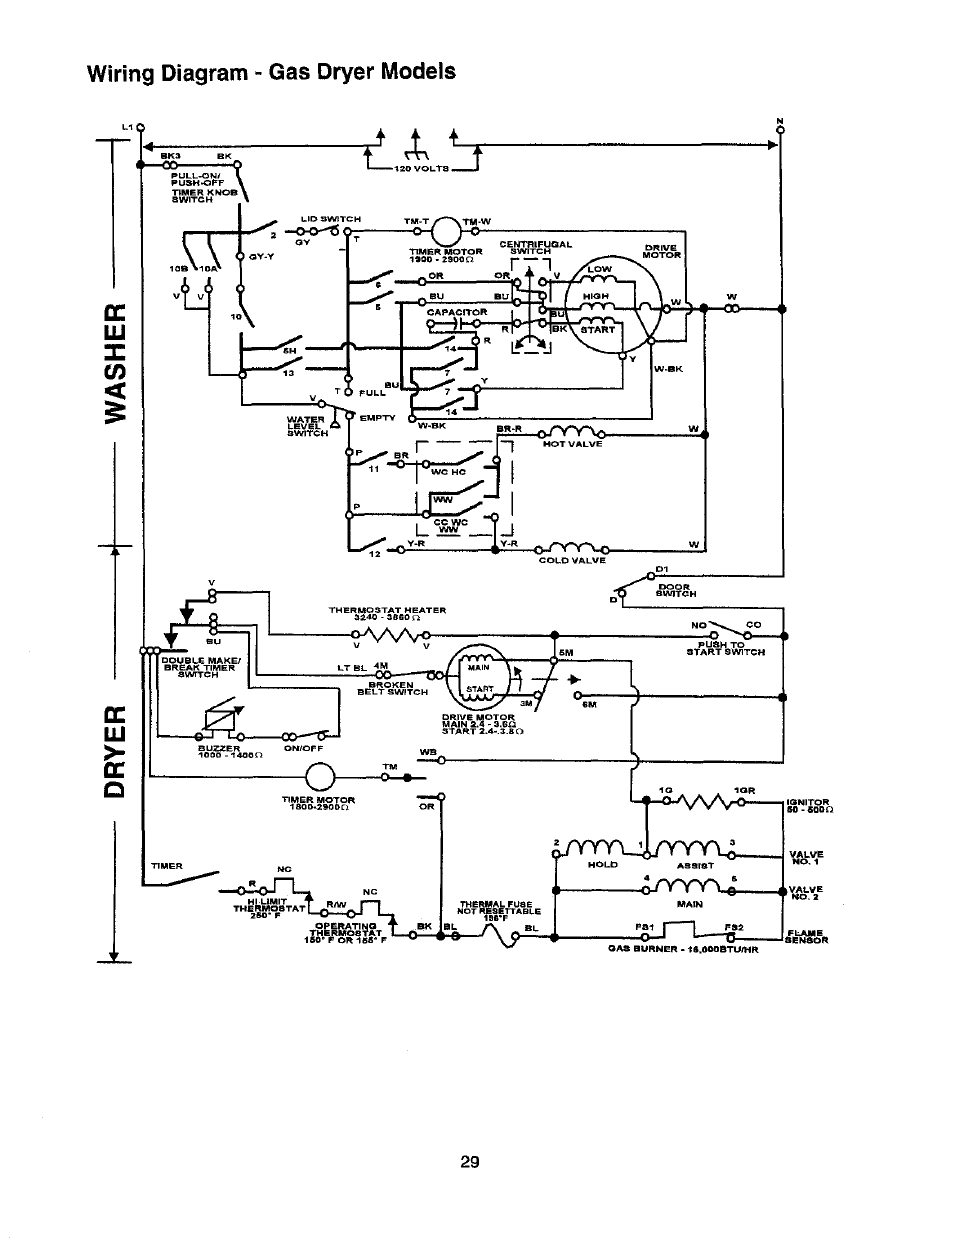 Whirlpool Thin Twin Wiring Diagram And Schematics Gas Dryer Models User Manual Page 36 40